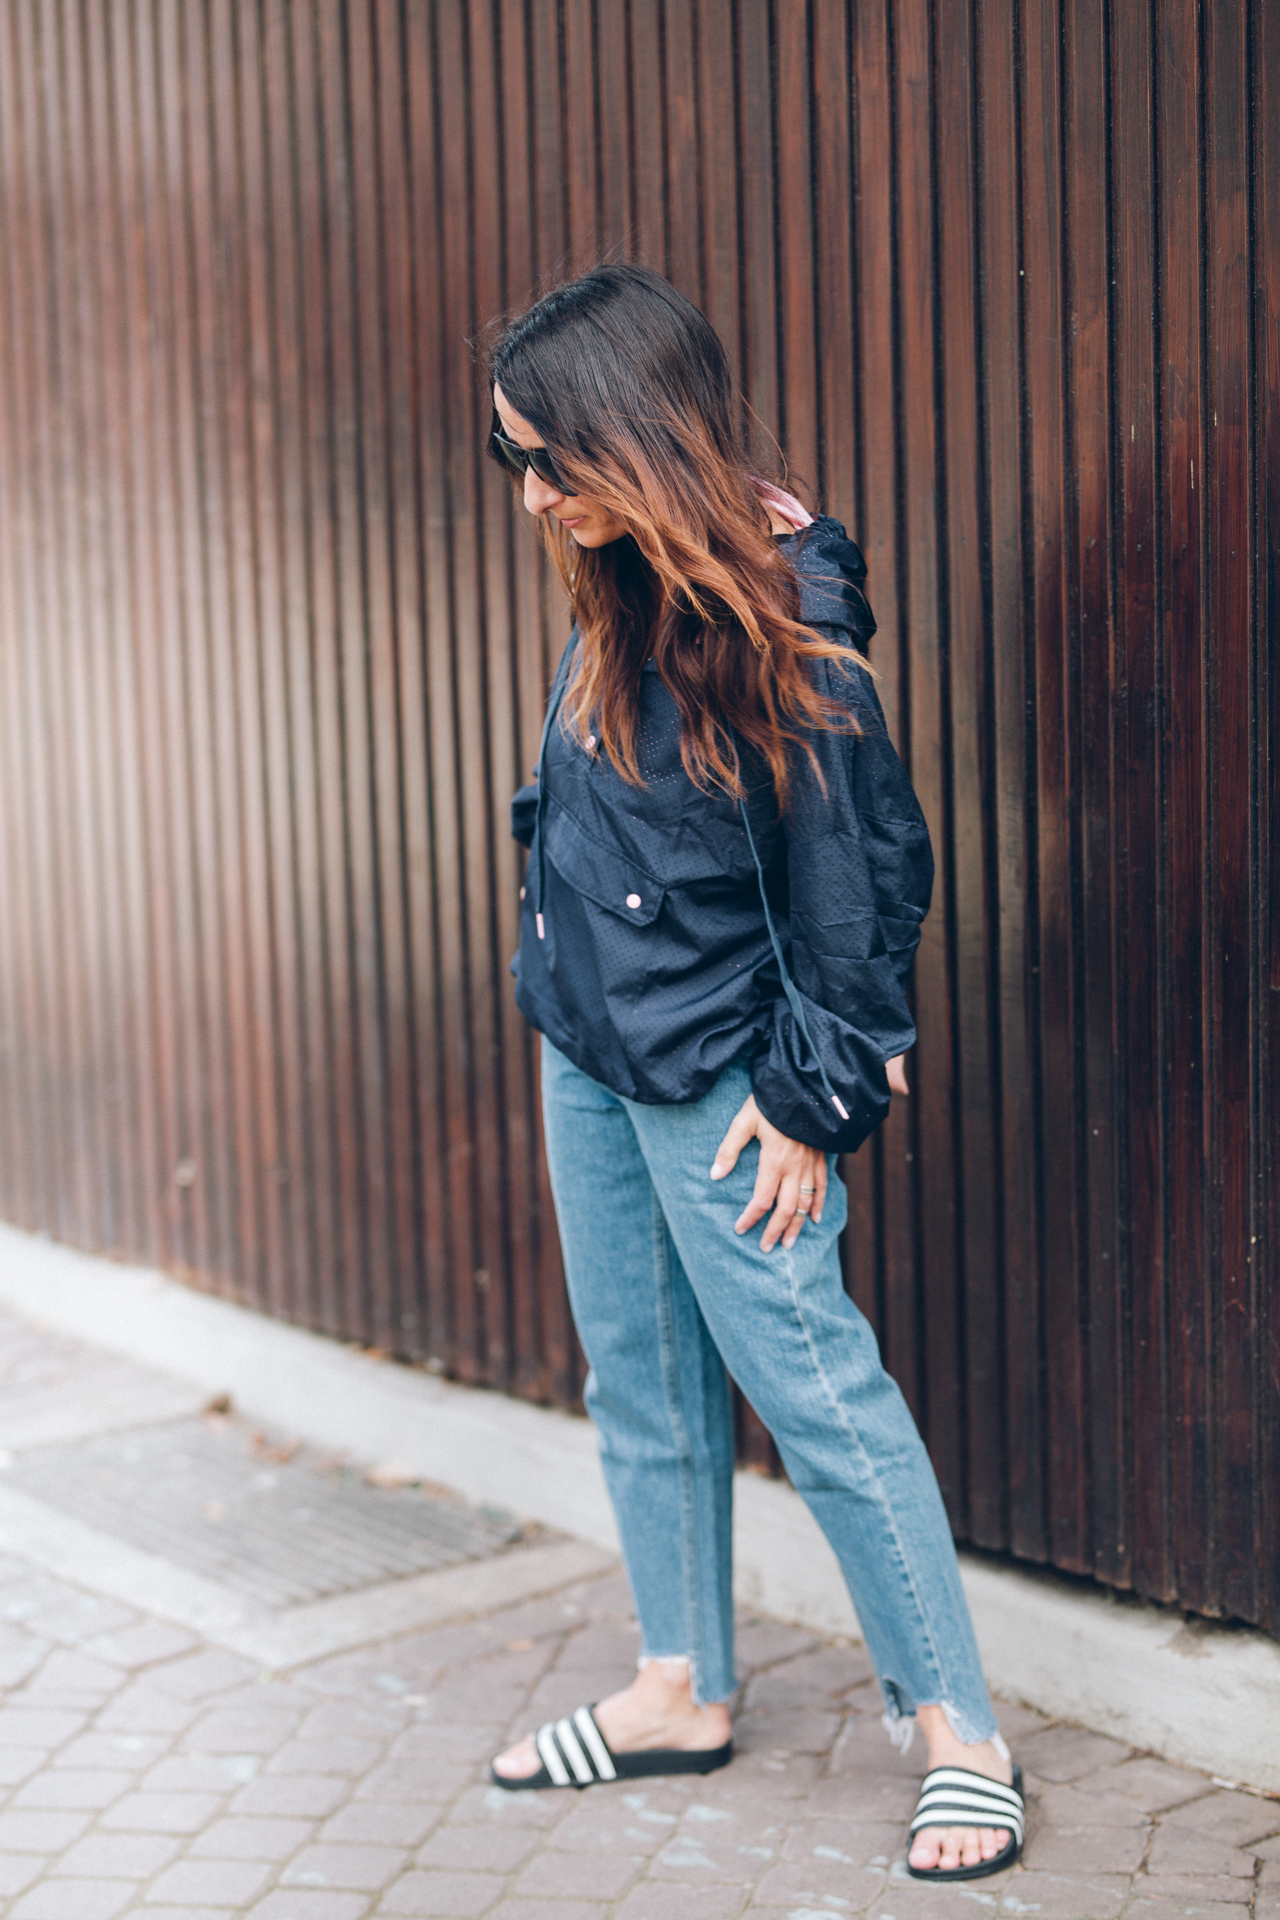 Denim Athleisure Style Outfit